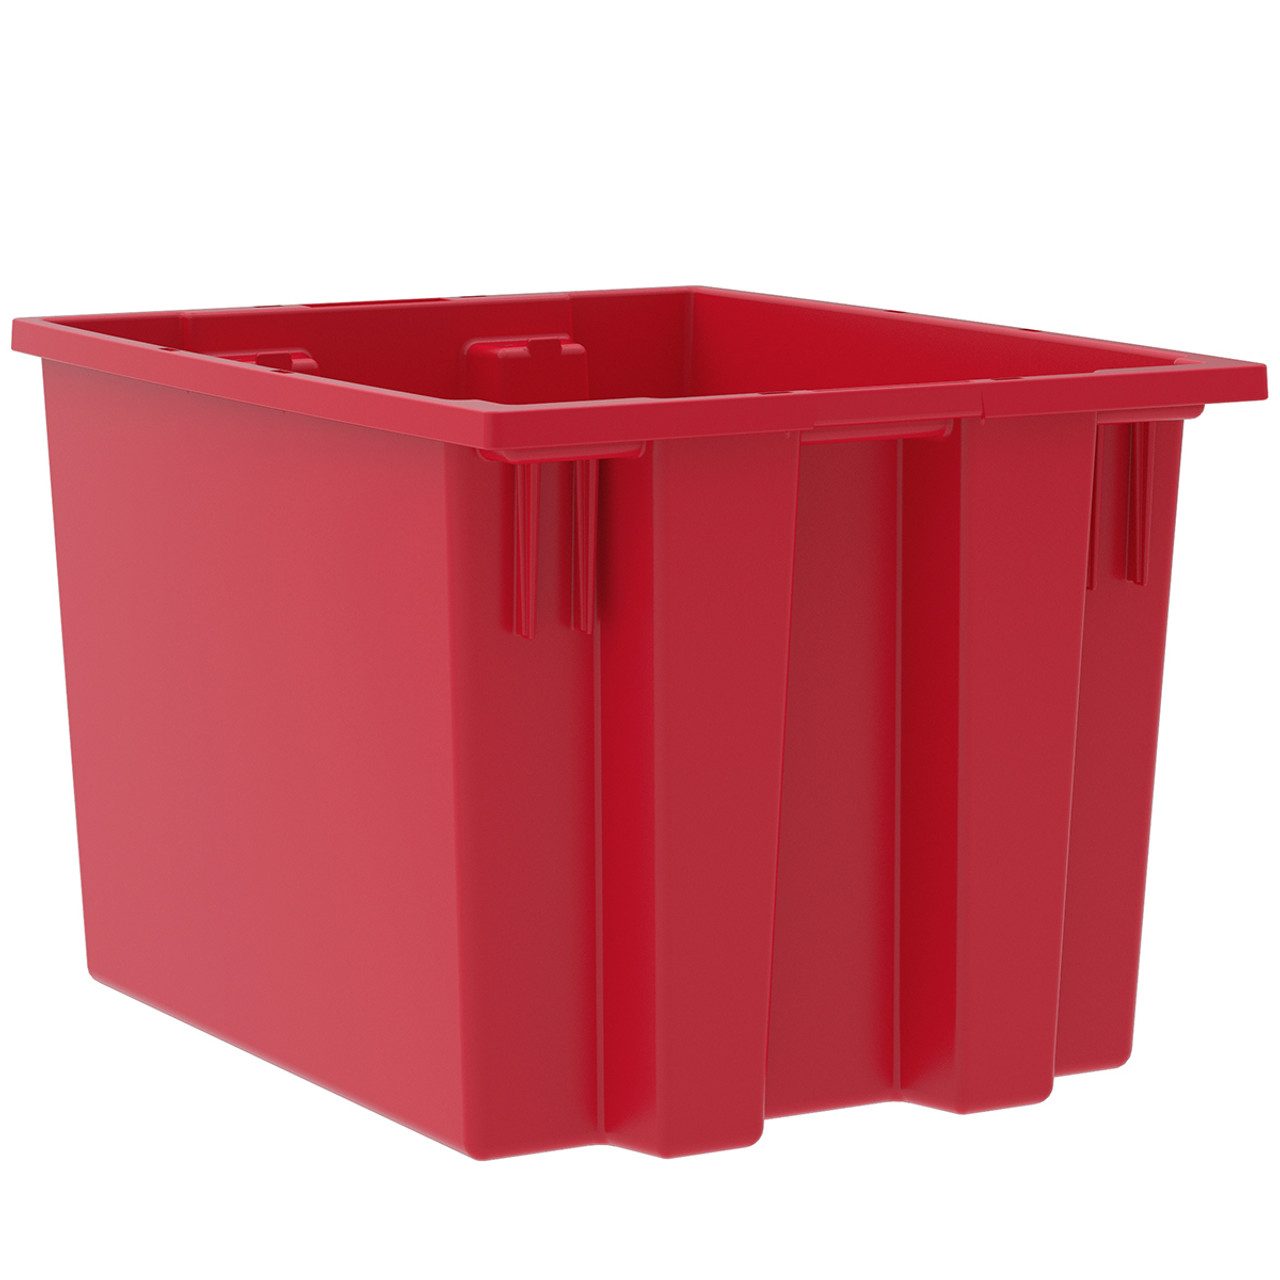 Tote, Nest & Stack Tote 19-1/2 x 15-1/2 x 13  35195RED